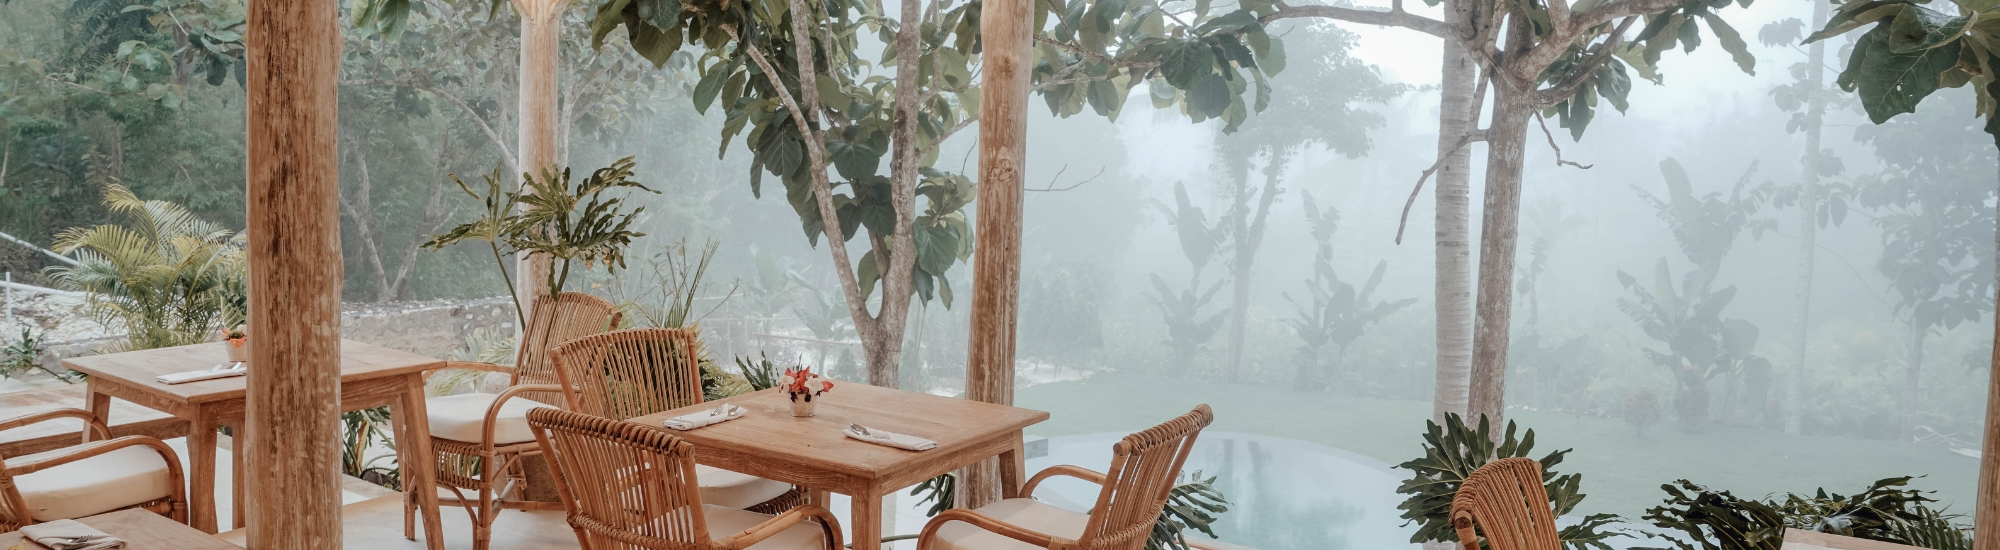 Restaurant | The Mesare Resort, Nusa Penida, Bali